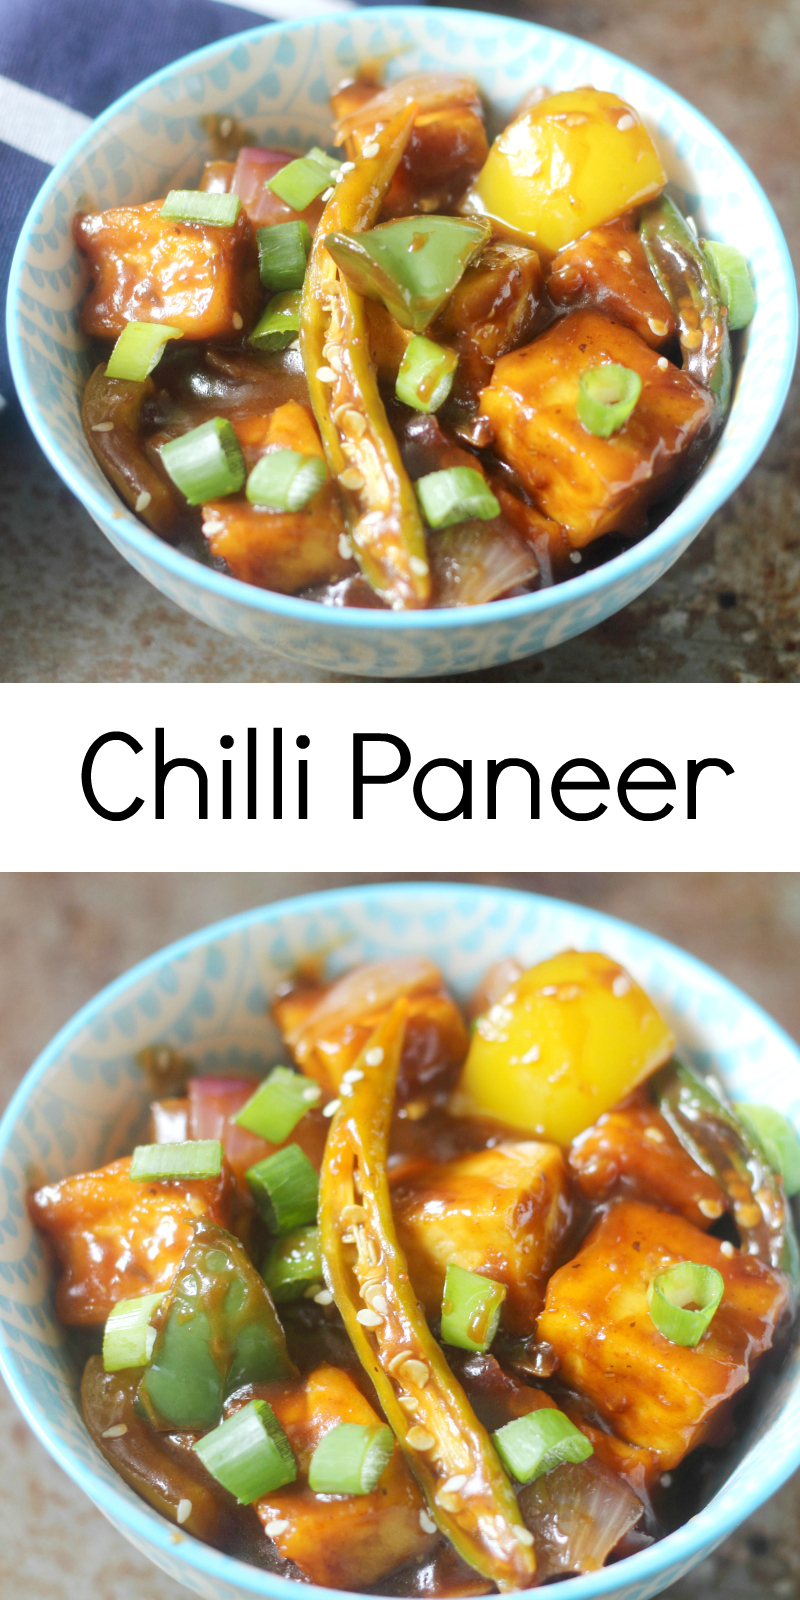 Merry tummy low fat chilli paneer indo chinese recipe low fat chilli paneer indo chinese recipe forumfinder Choice Image